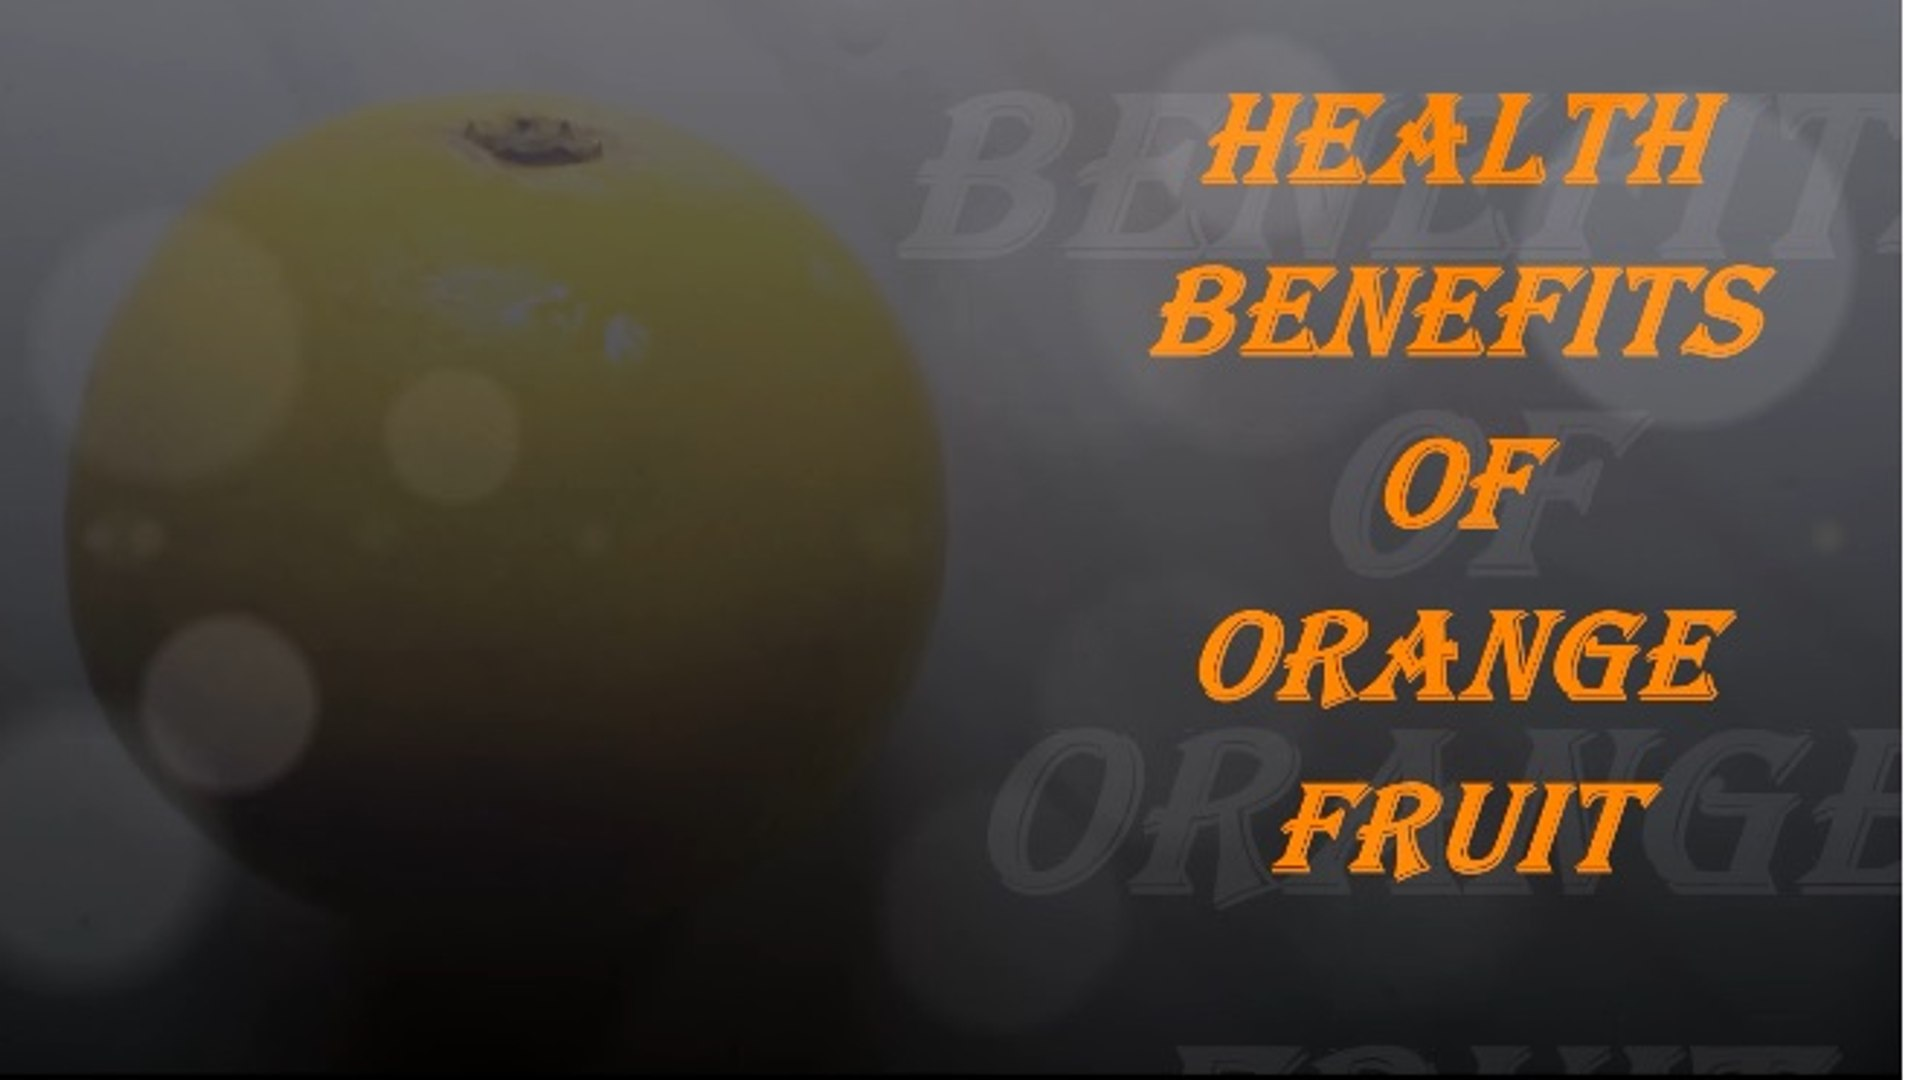 Health Benefits Of Orange Fruit - Fruits Planet - Nature Documentary HD